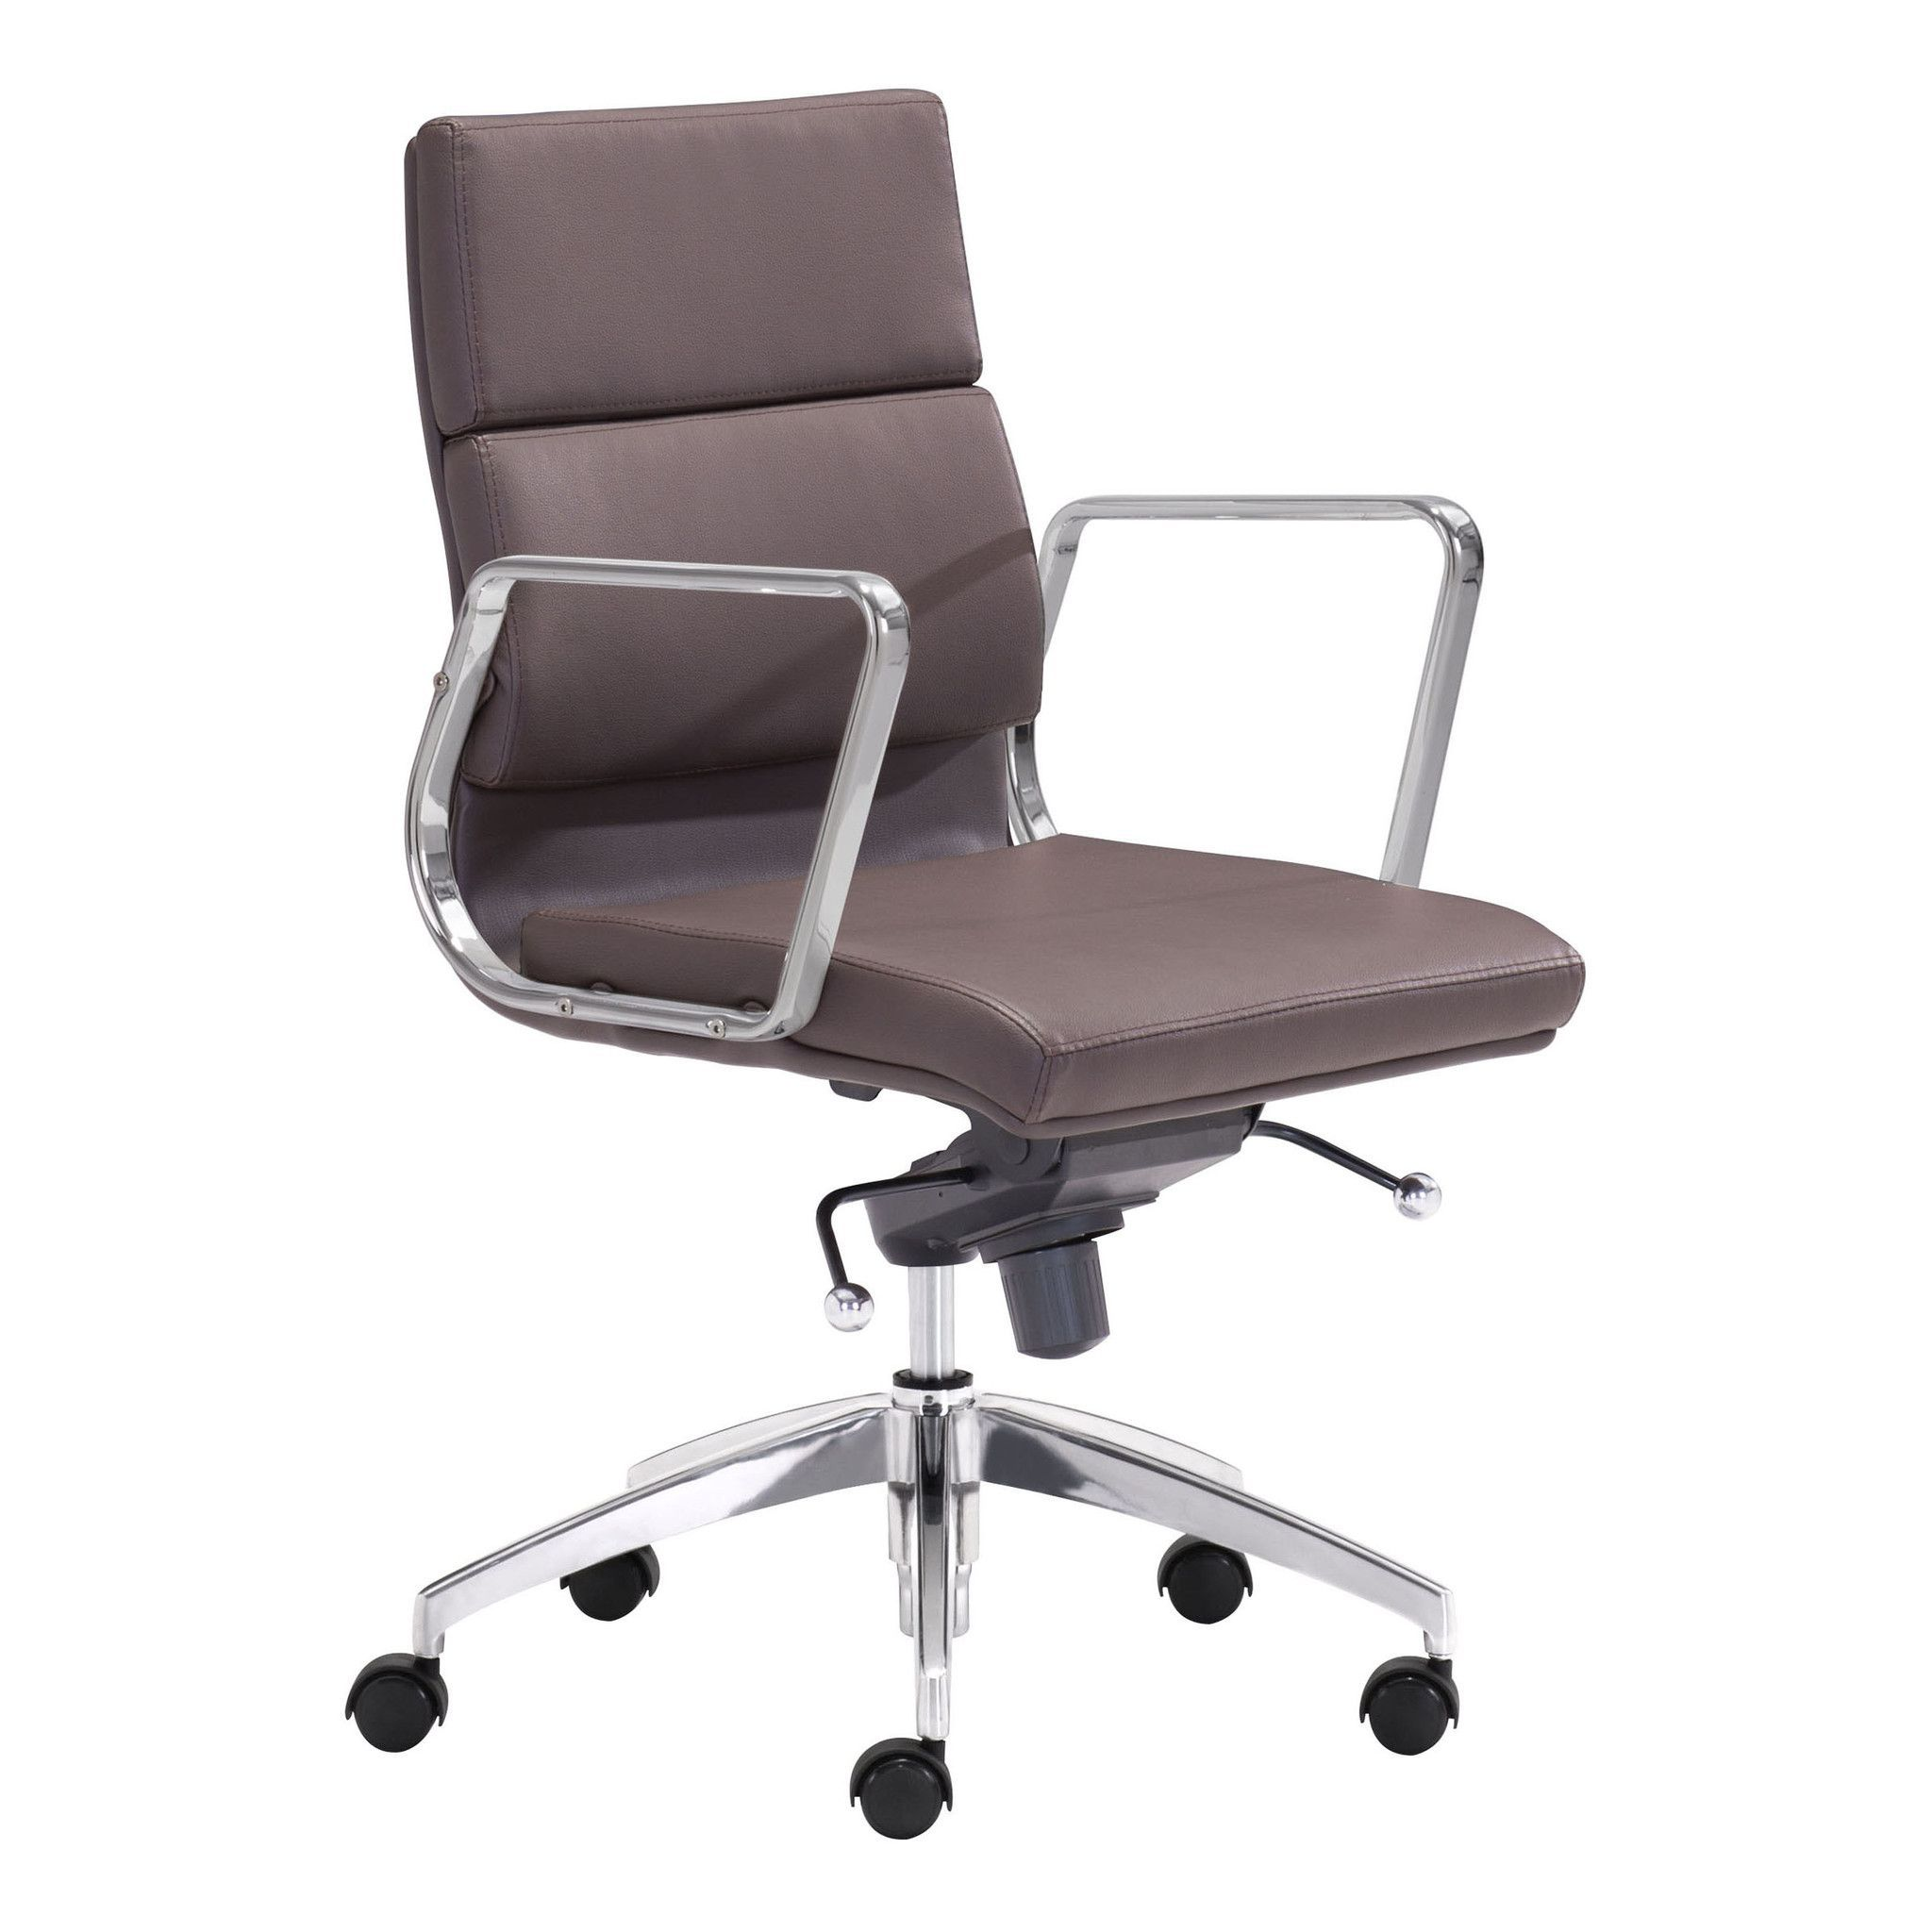 Engineer low back office chair espresso chairs office chairs and